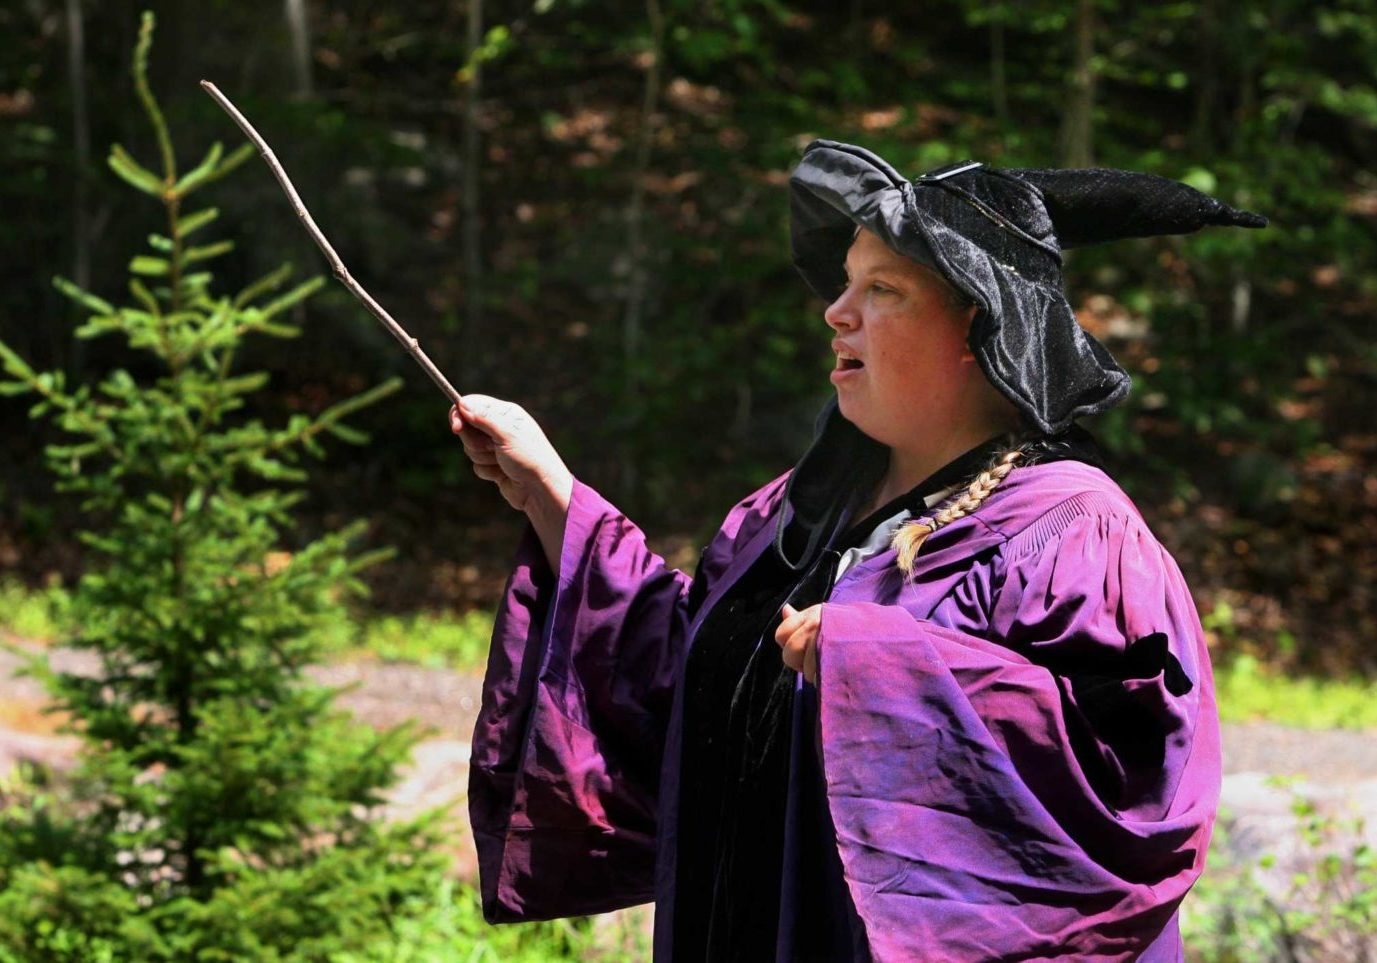 Professor Quickwit, played by Stamford Museum & Nature Center Director of Education Lisa Monachelli, teaches kids how to use their magic wands during a potions class as part of a Wizard Picnic to celebrate Harry Potter's birthday on the grounds in Stamford, Conn., on Saturday July 31, 2021. Kids came dressed as wizards and took part in several activities like making their own wands, a potions class, a visit with some magical creatures from the nature center and snacks.